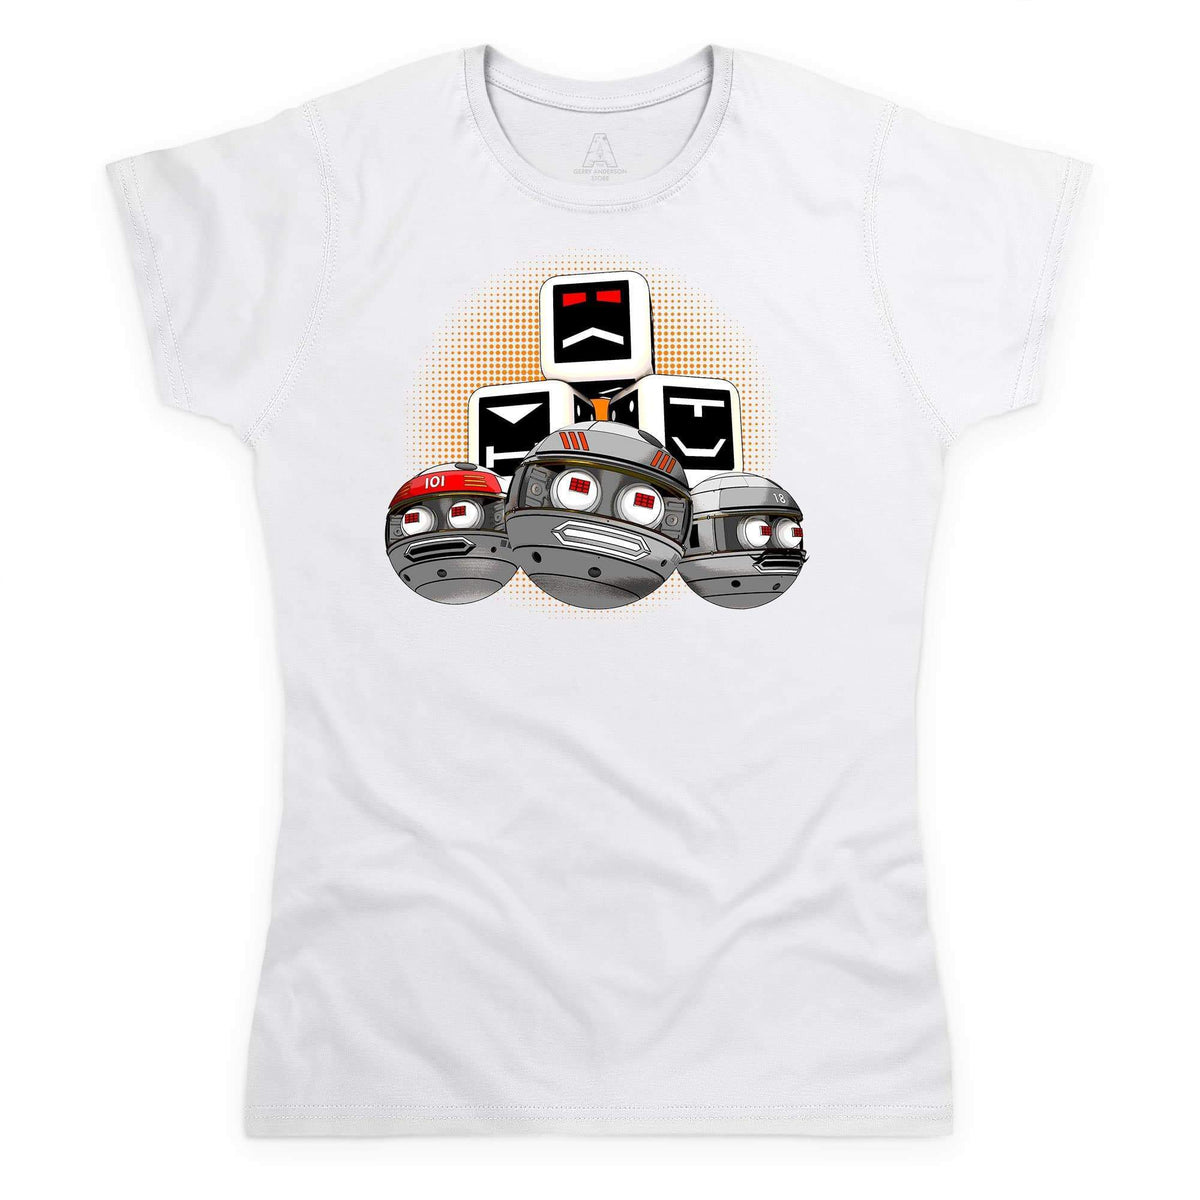 Terrahawks Zeroids & Cubes Design Women's White T-Shirt [Official & Exclusive] - The Gerry Anderson Store